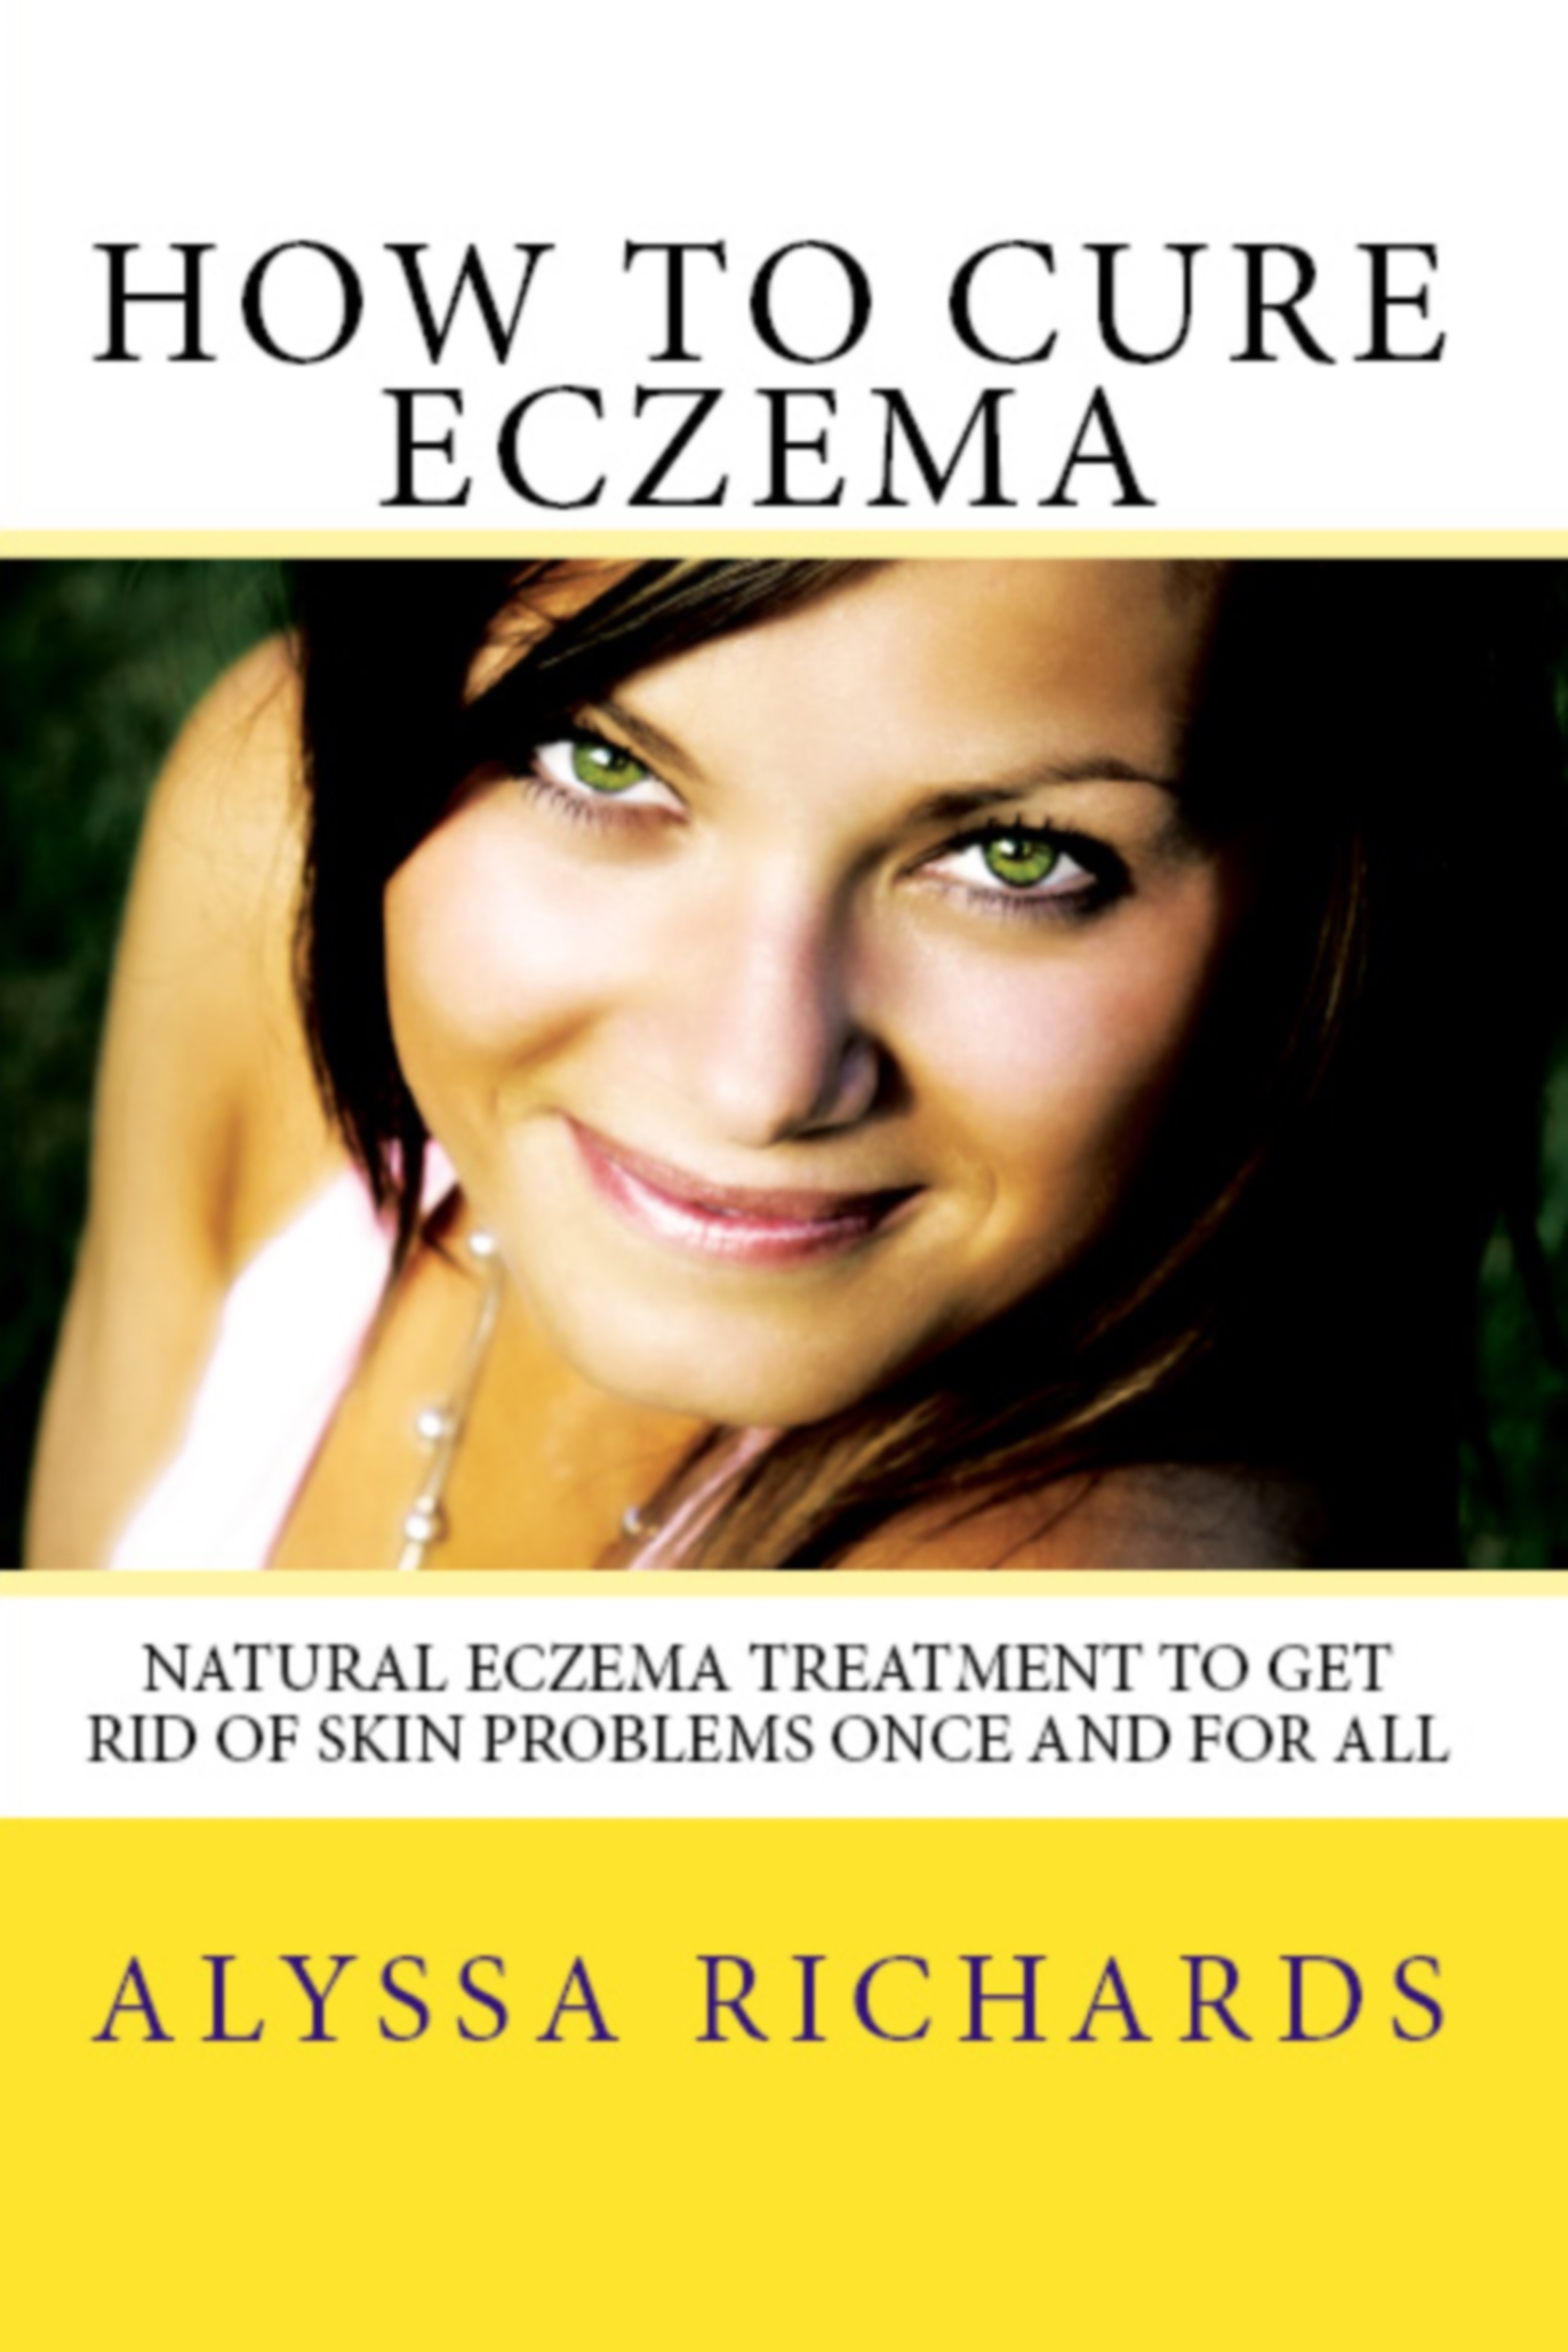 How To Cure Eczema: Natural Eczema Treatment To Get Rid Of Skin Problems Once And For All